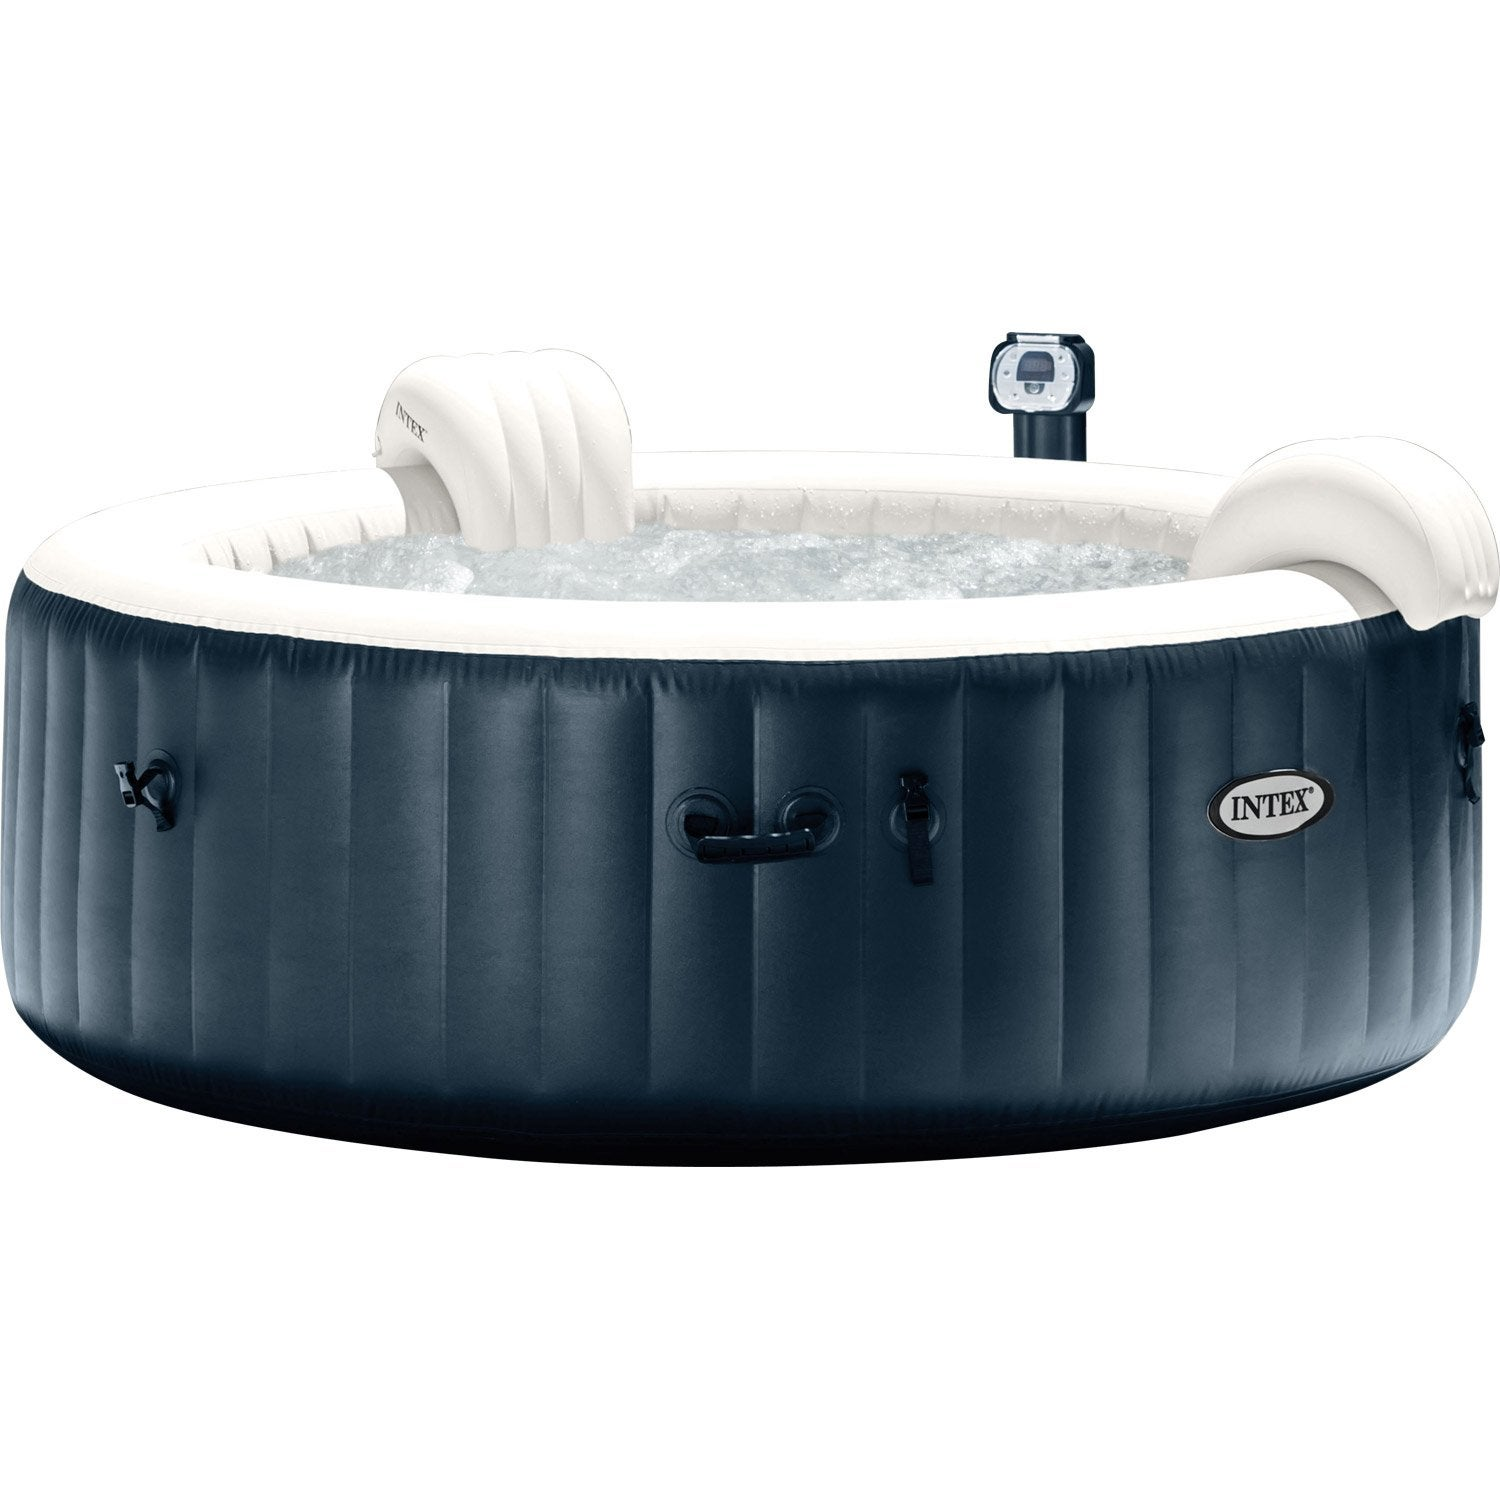 jacuzzi gonflable brico abri pour spa gonflable intex. Black Bedroom Furniture Sets. Home Design Ideas